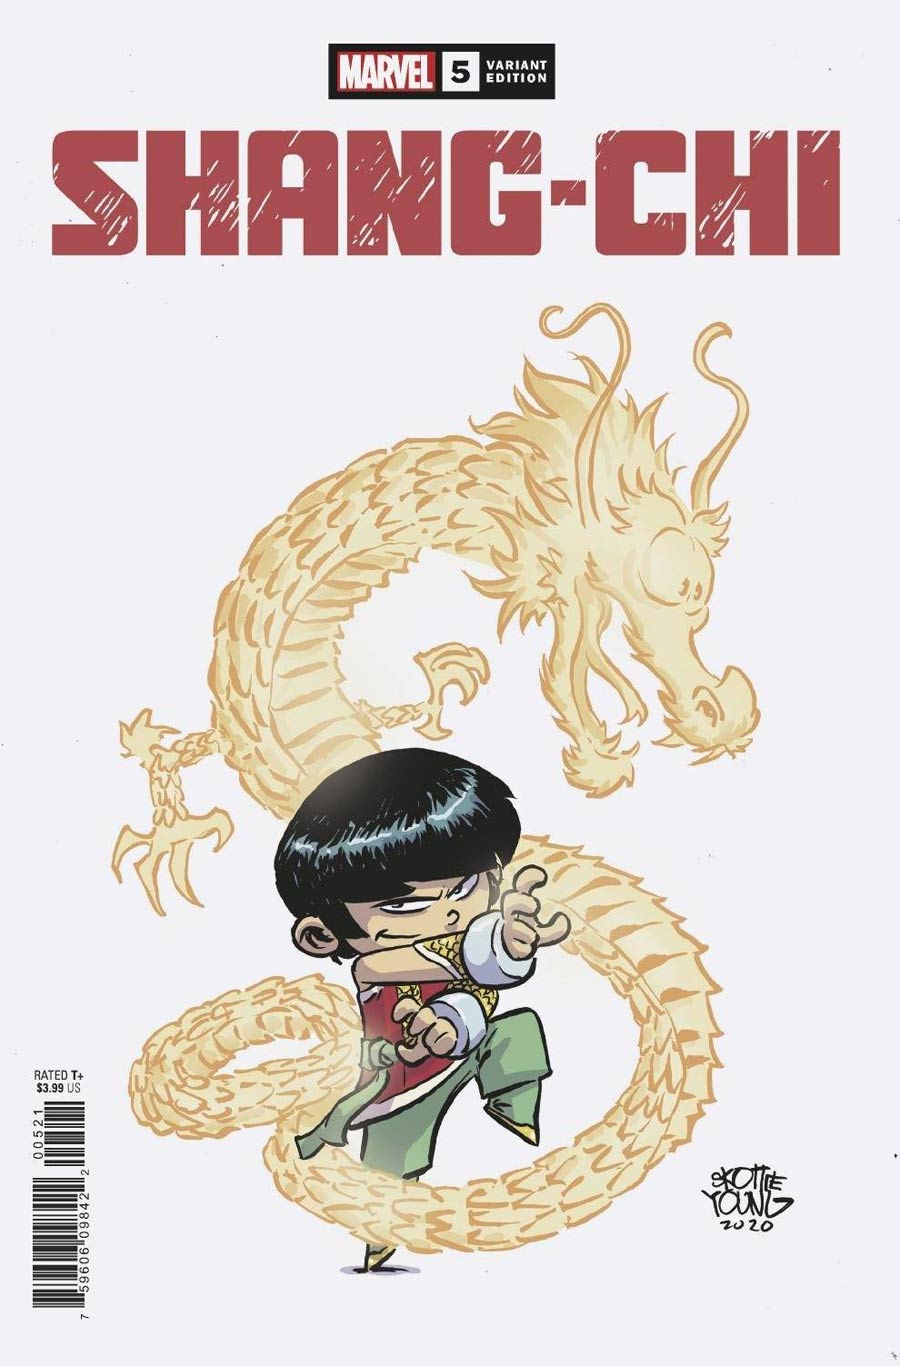 Shang-Chi #5 Variant Cover by Skottie Young